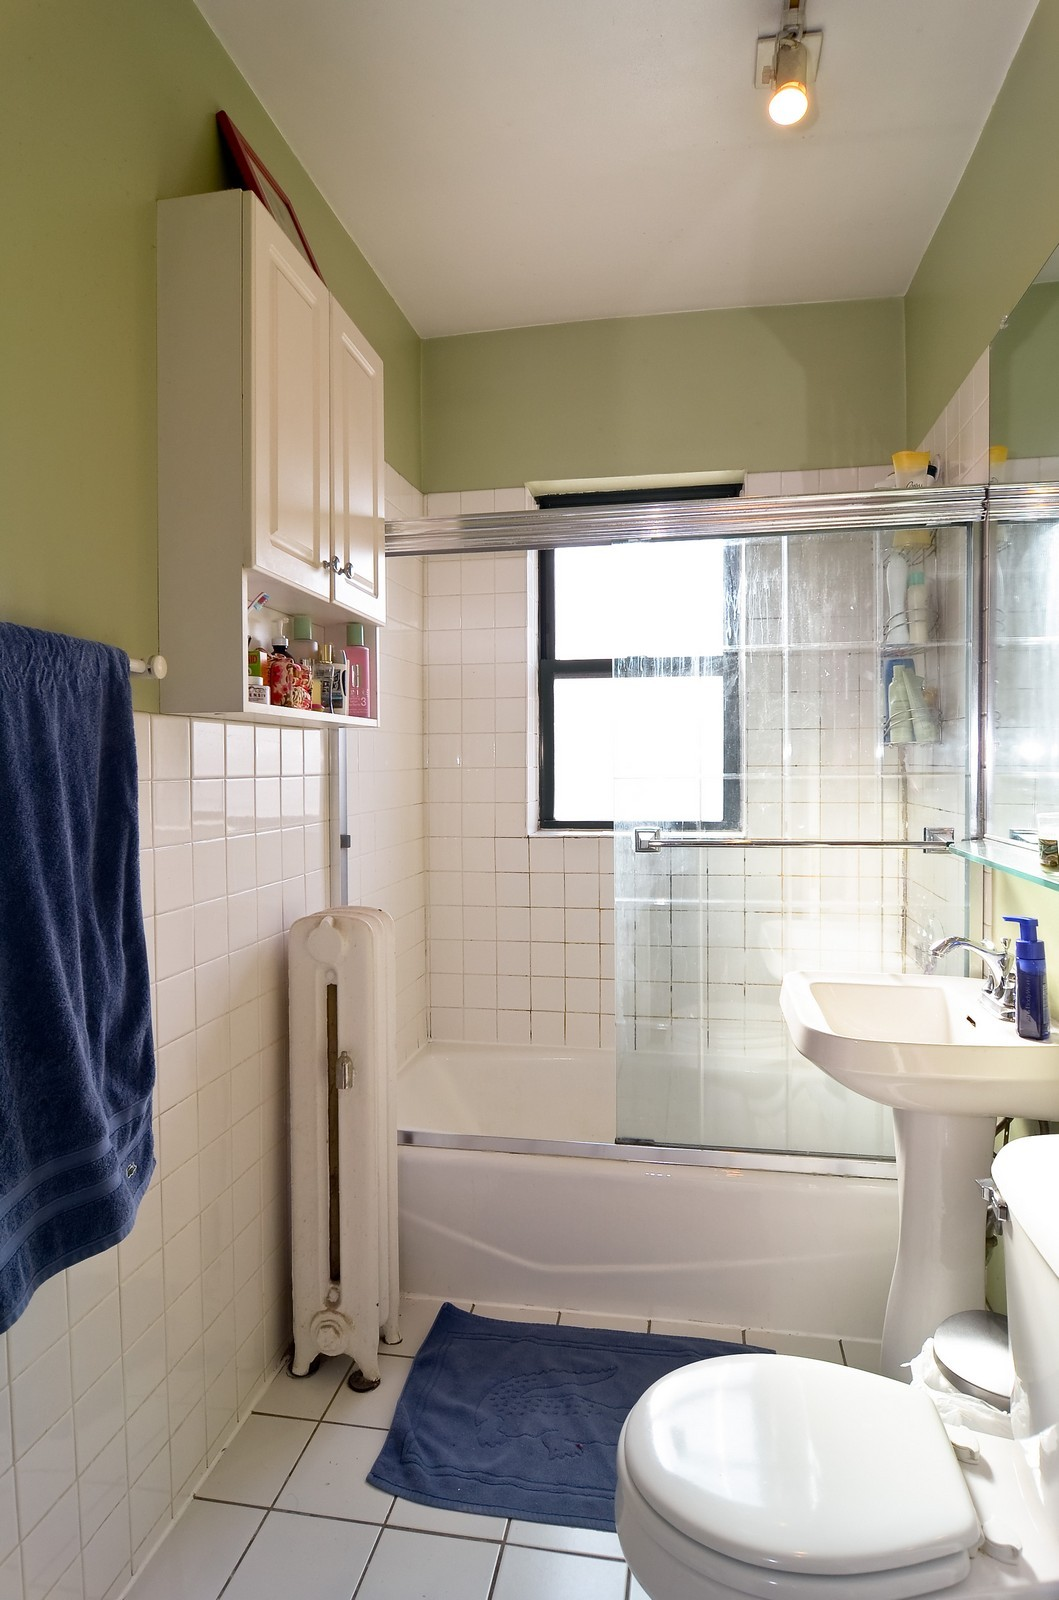 Real Estate Photography - 1154 W. Lill, 3, Chicago, IL, 60614 - Bathroom